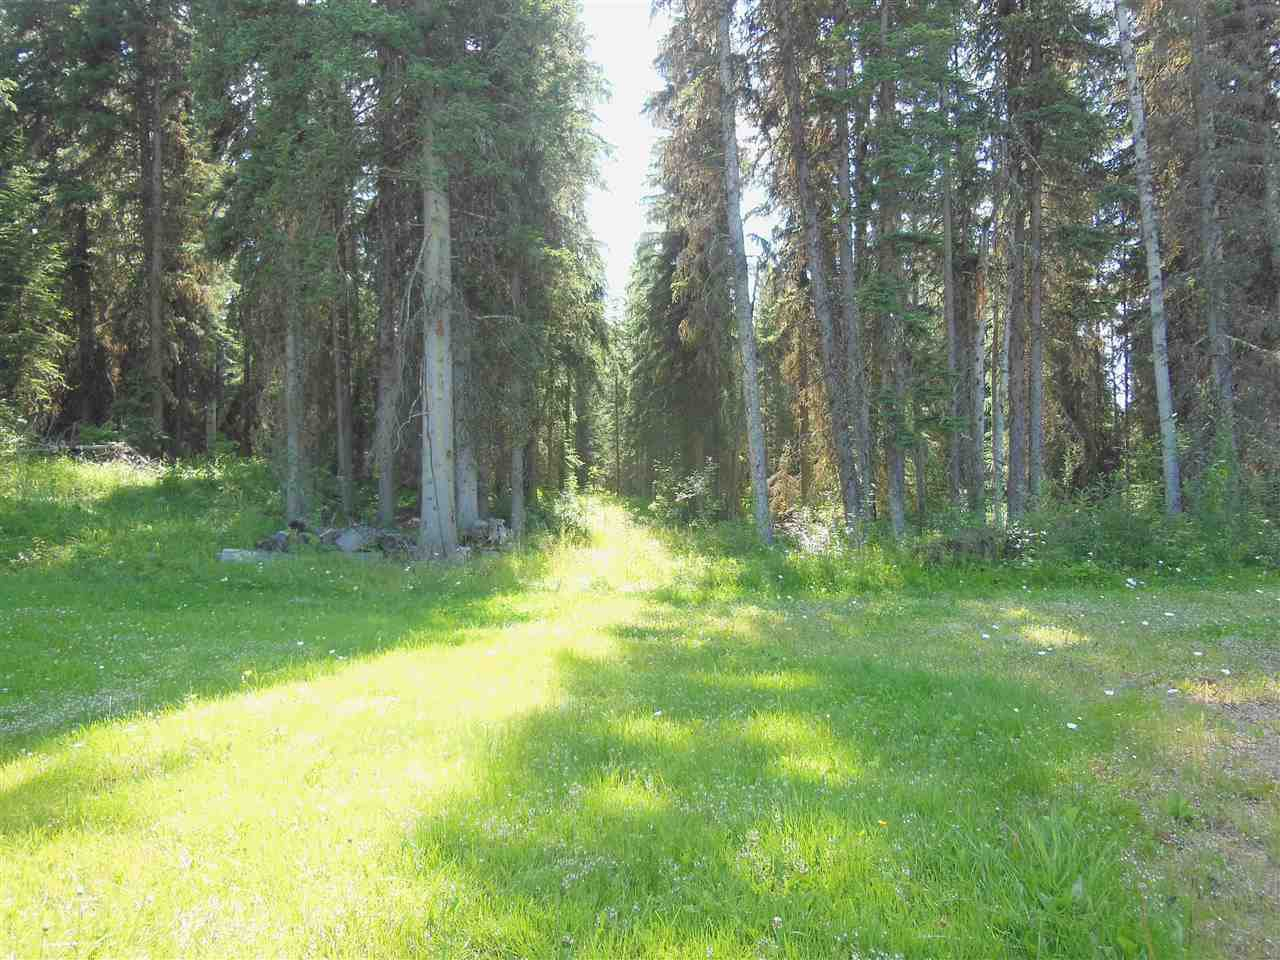 Photo 27: Photos: 3535 WESTWICK PIT Road: 150 Mile House House for sale (Williams Lake (Zone 27))  : MLS®# R2488772